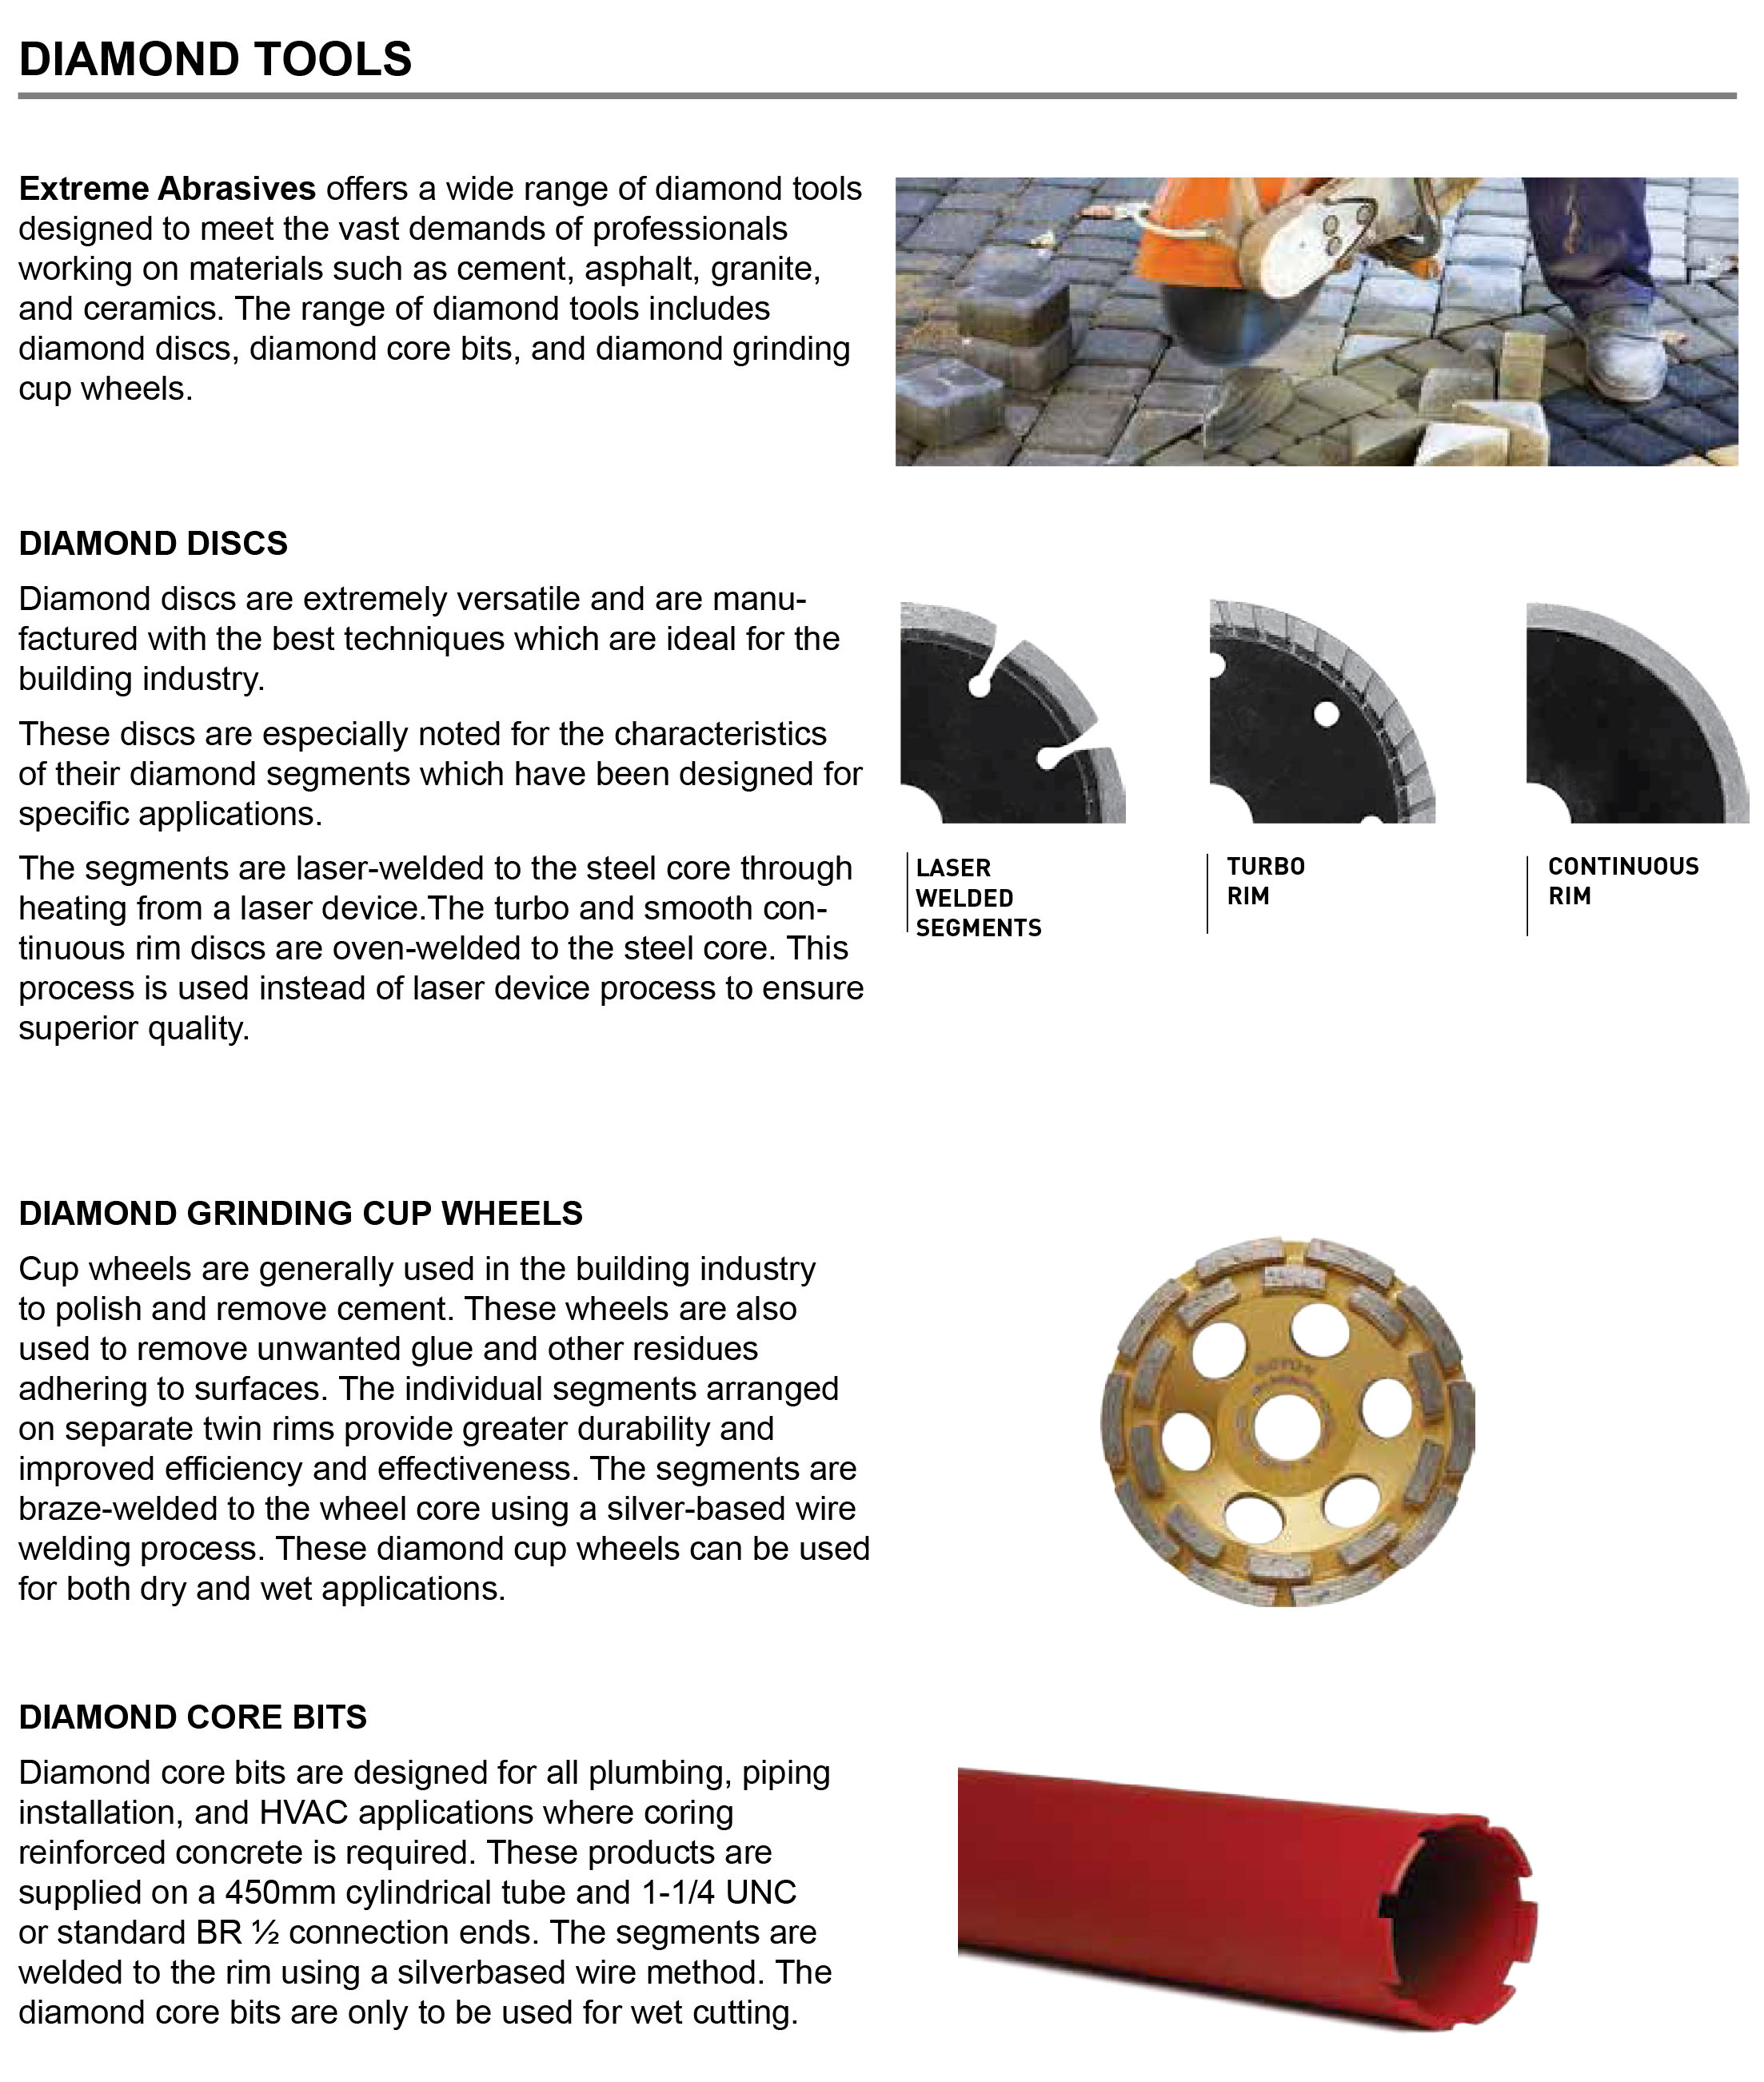 Diamond Tools Application Guide | Extreme Abrasives